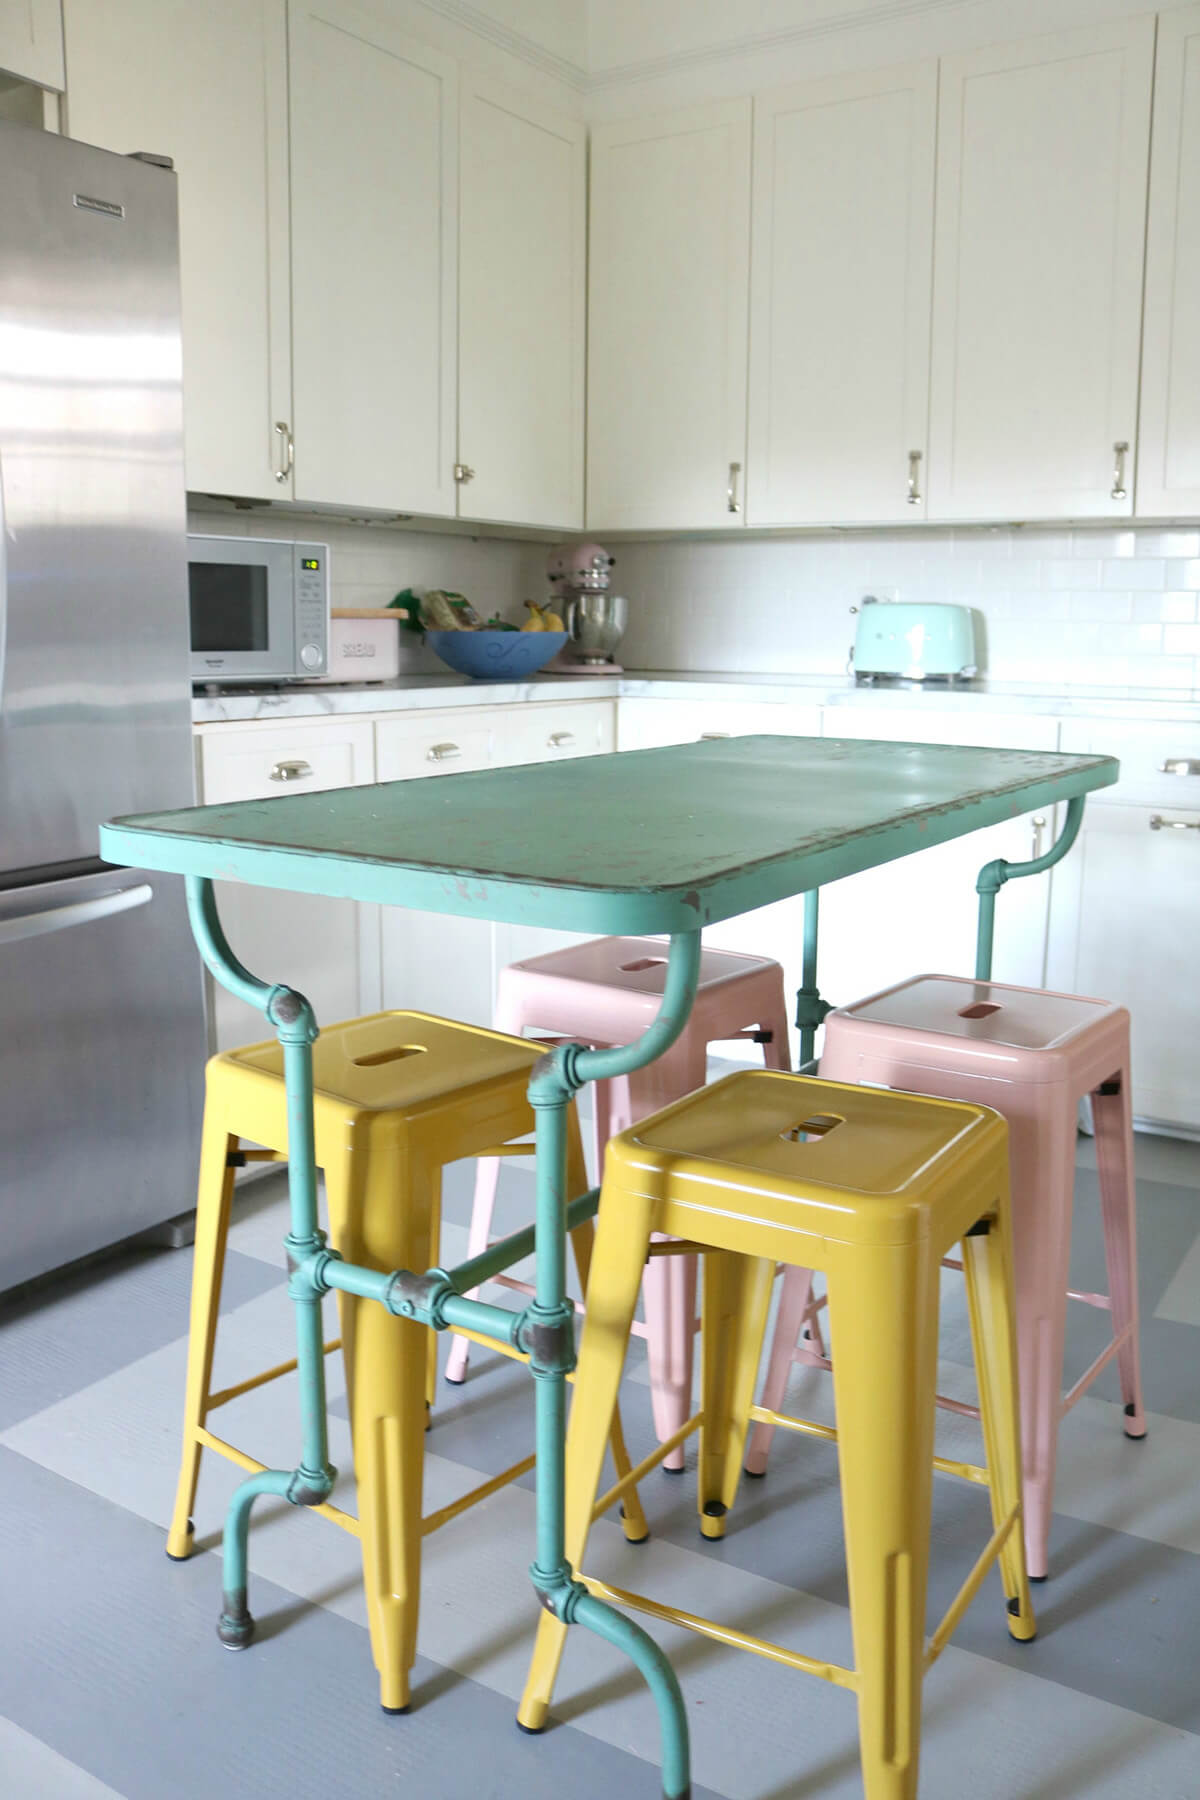 Kitchen with Repurposed Multi-Colored Island Seating